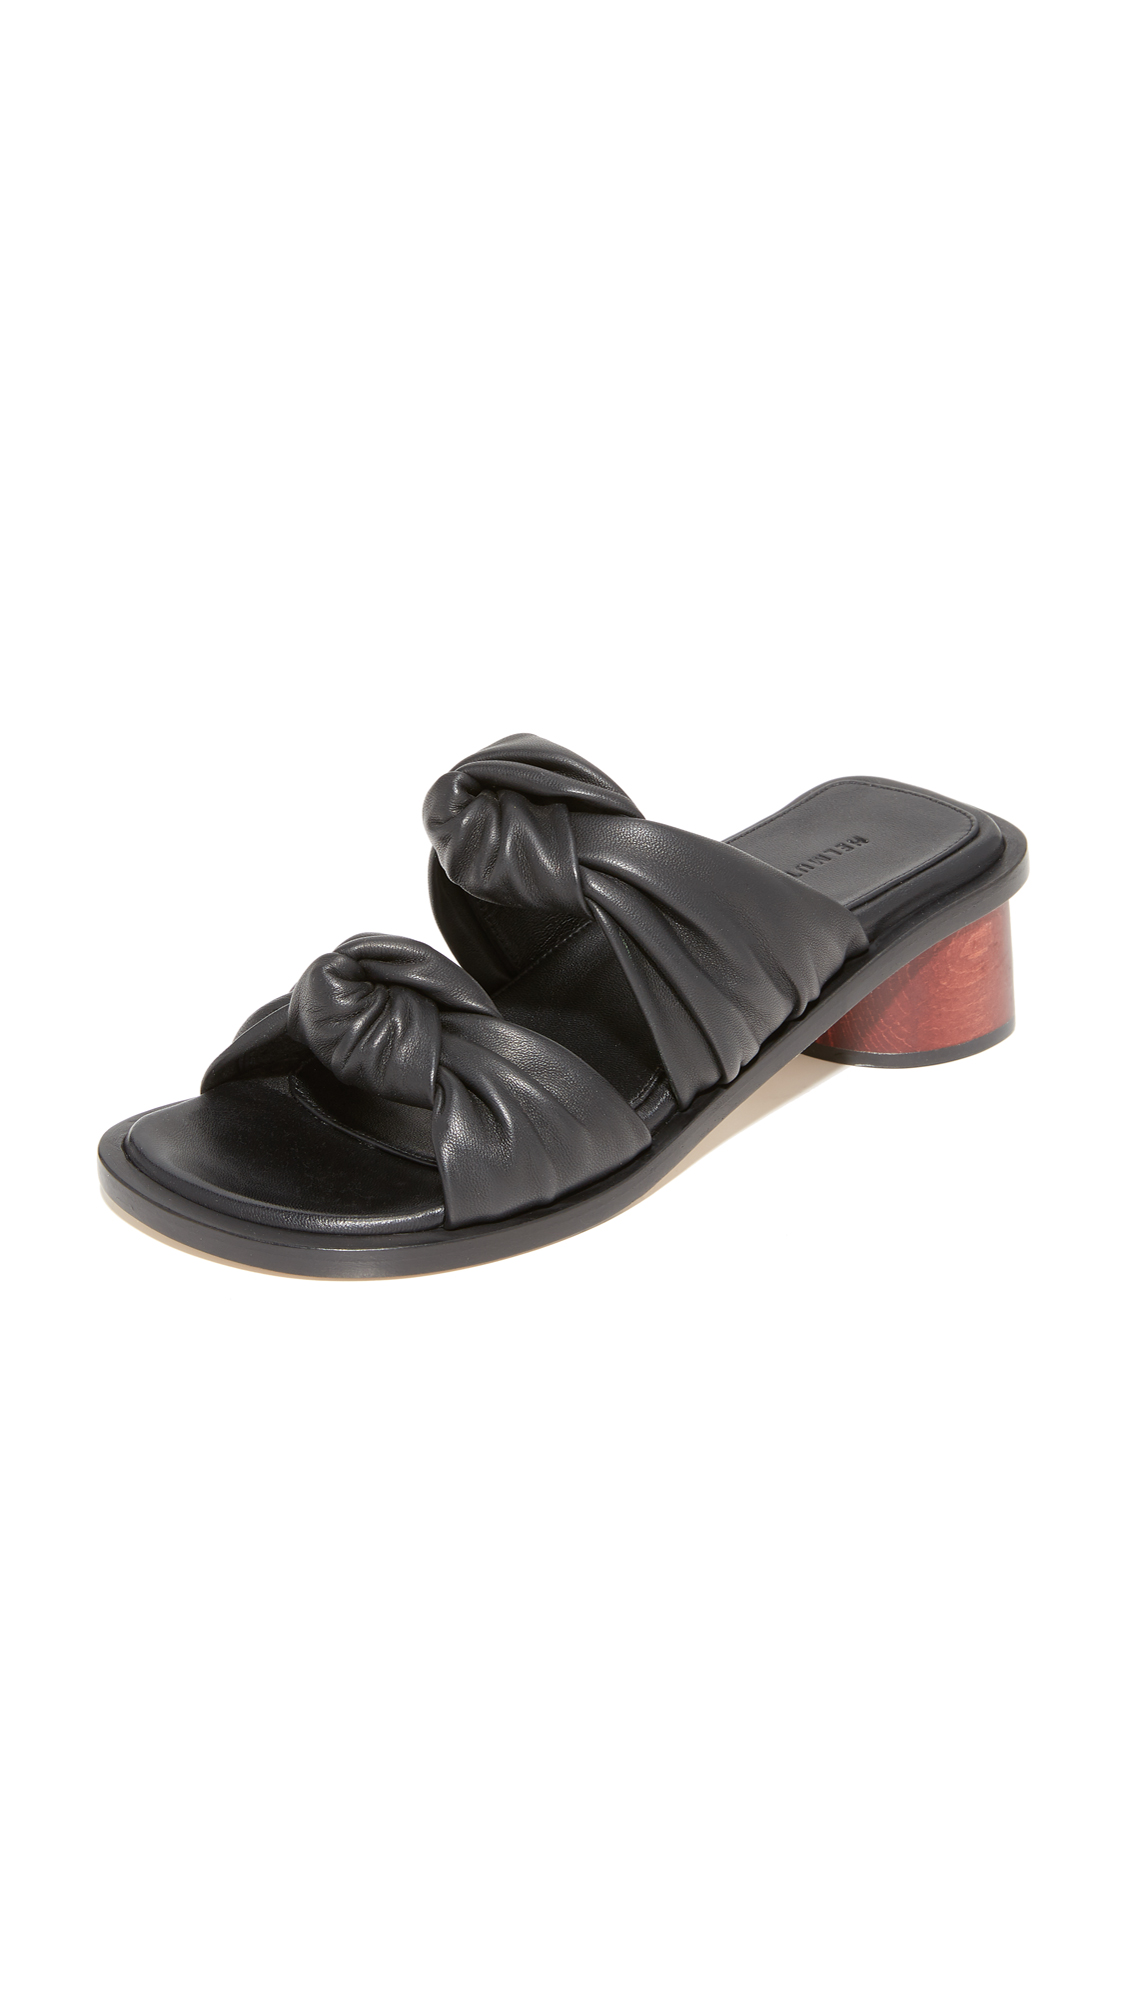 Helmut Lang Double Knotted Slides - Black